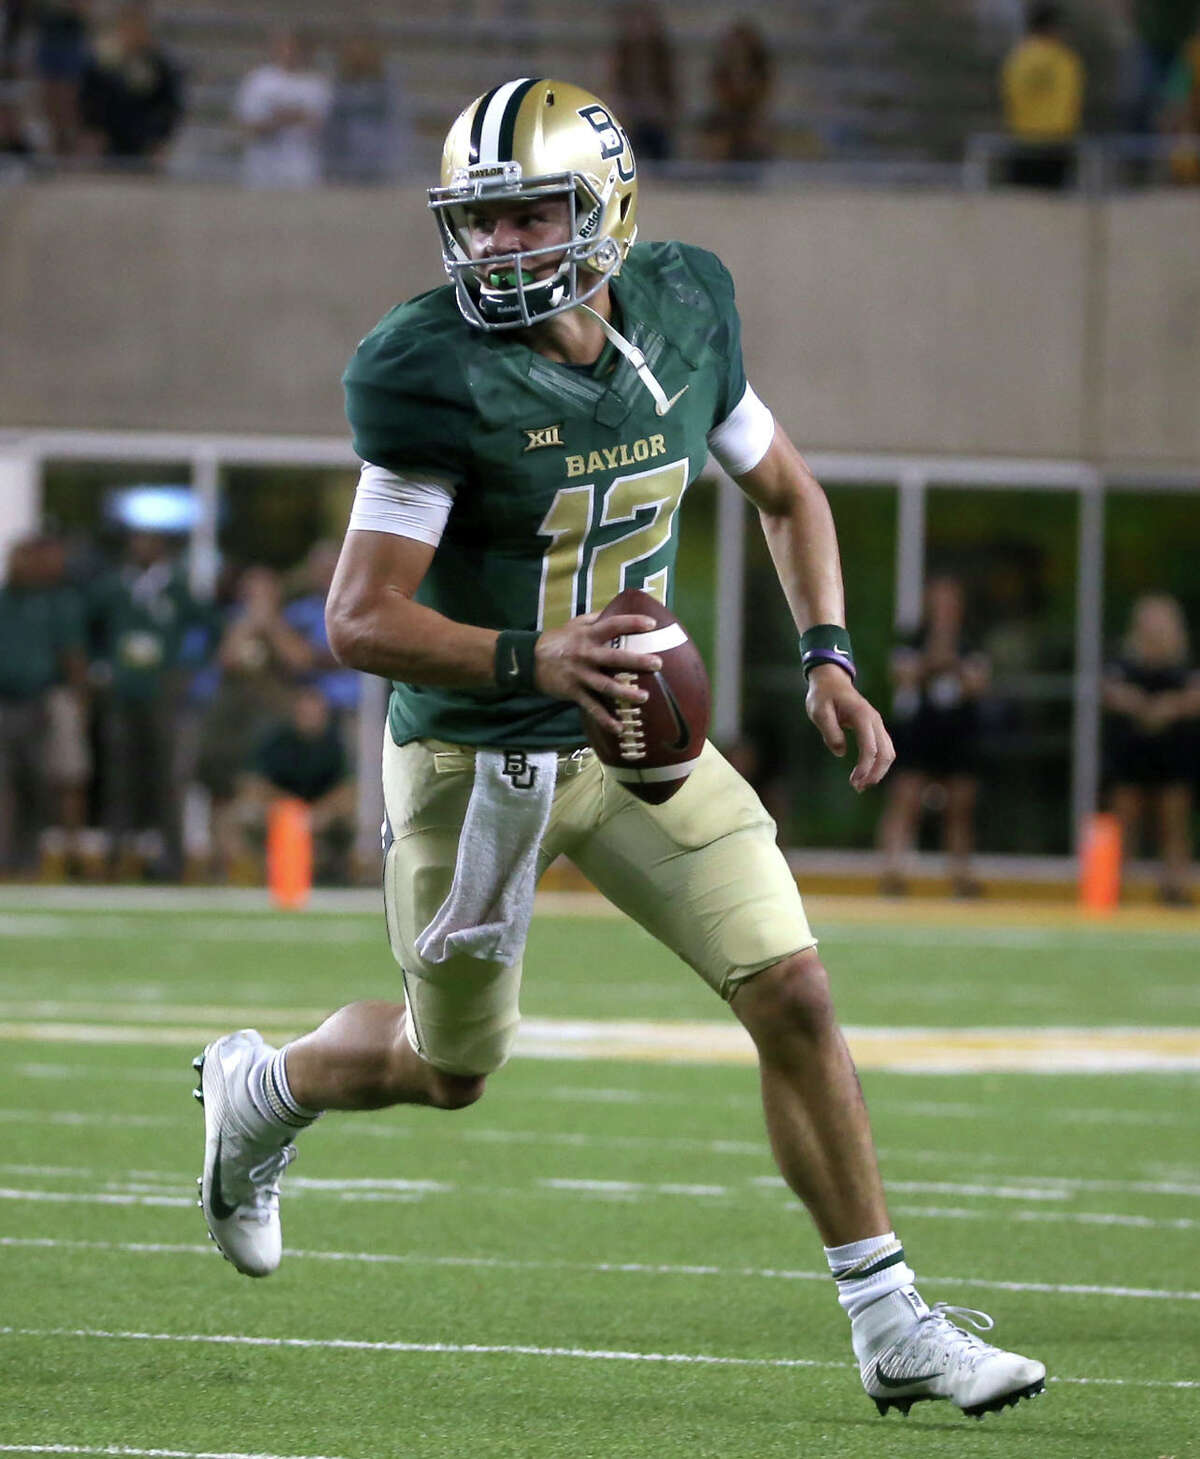 Baylor quarterback Charlie Brewer scrambles against West Virginia during the second half of an NCAA college football game, Saturday, Oct. 21, 2017, in Waco, Texas. West Virginia won 38-36.(AP Photo/Jerry Larson)